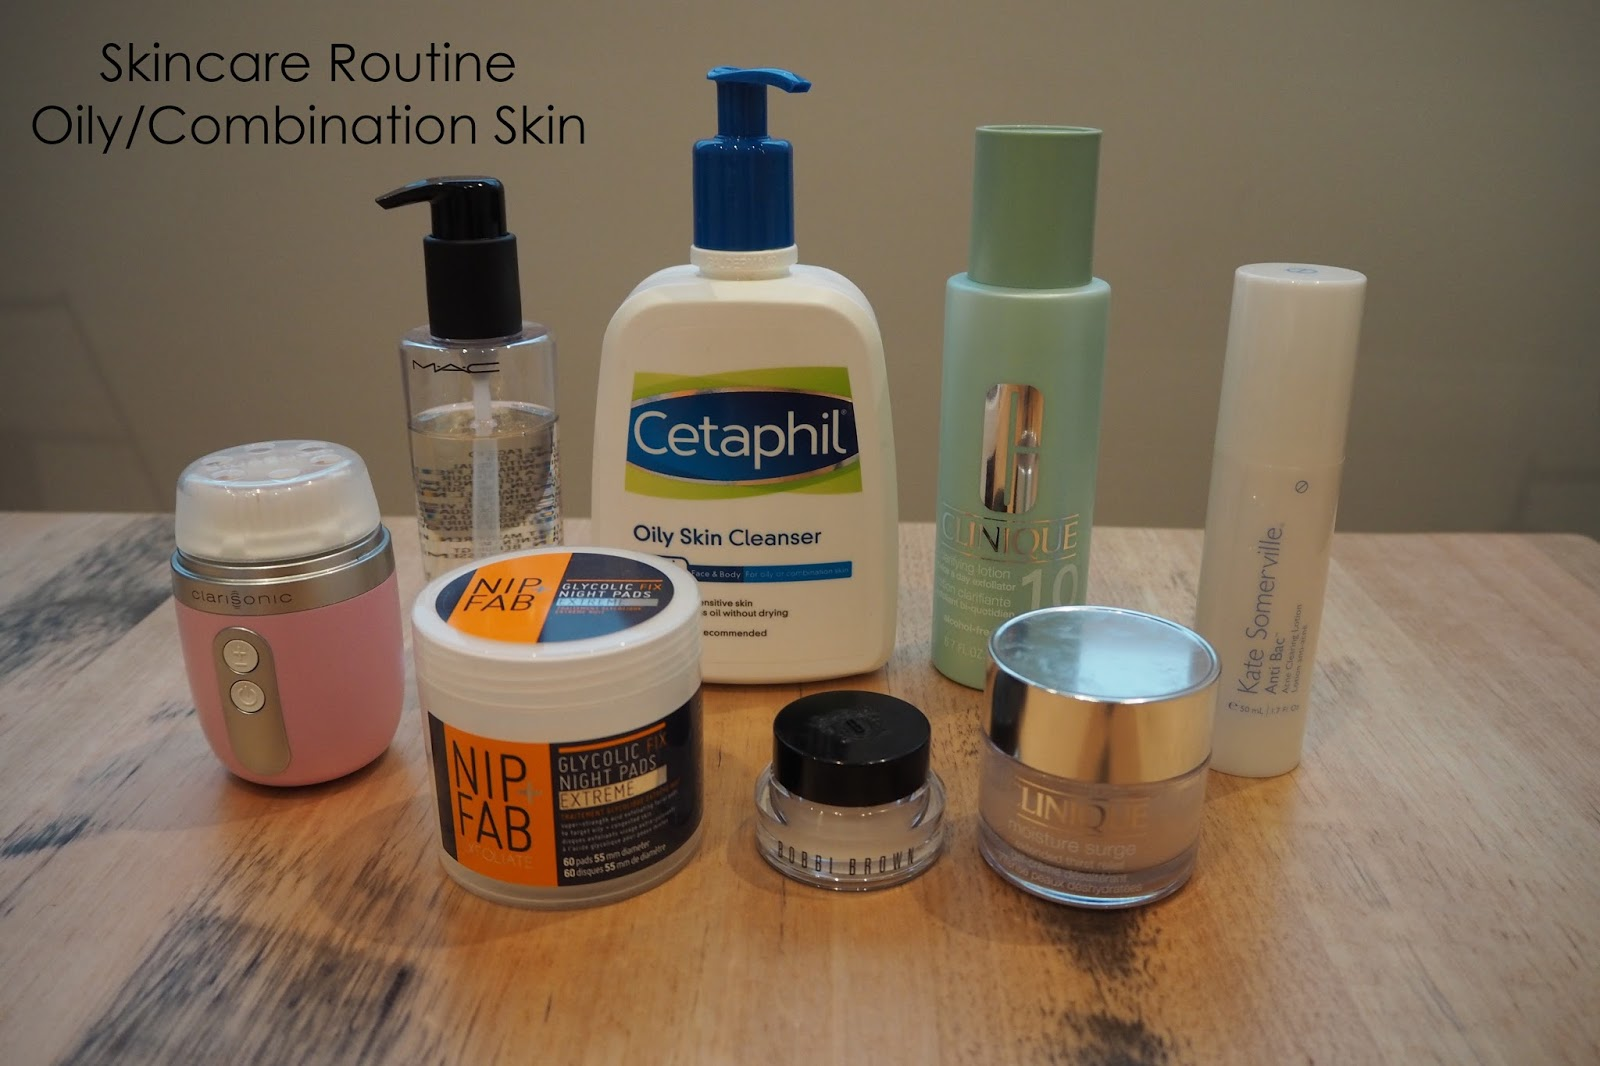 skincare routine combination oily skin, clarisonic mia fit, mac cleanse off oily, cetaphil oily skin cleanser, clinique 1.0 toner, kate somerville anti bac, nip+fab glycolic fix night pads extreme, bobbi brown hydrating eye cream, clinique moisture surge